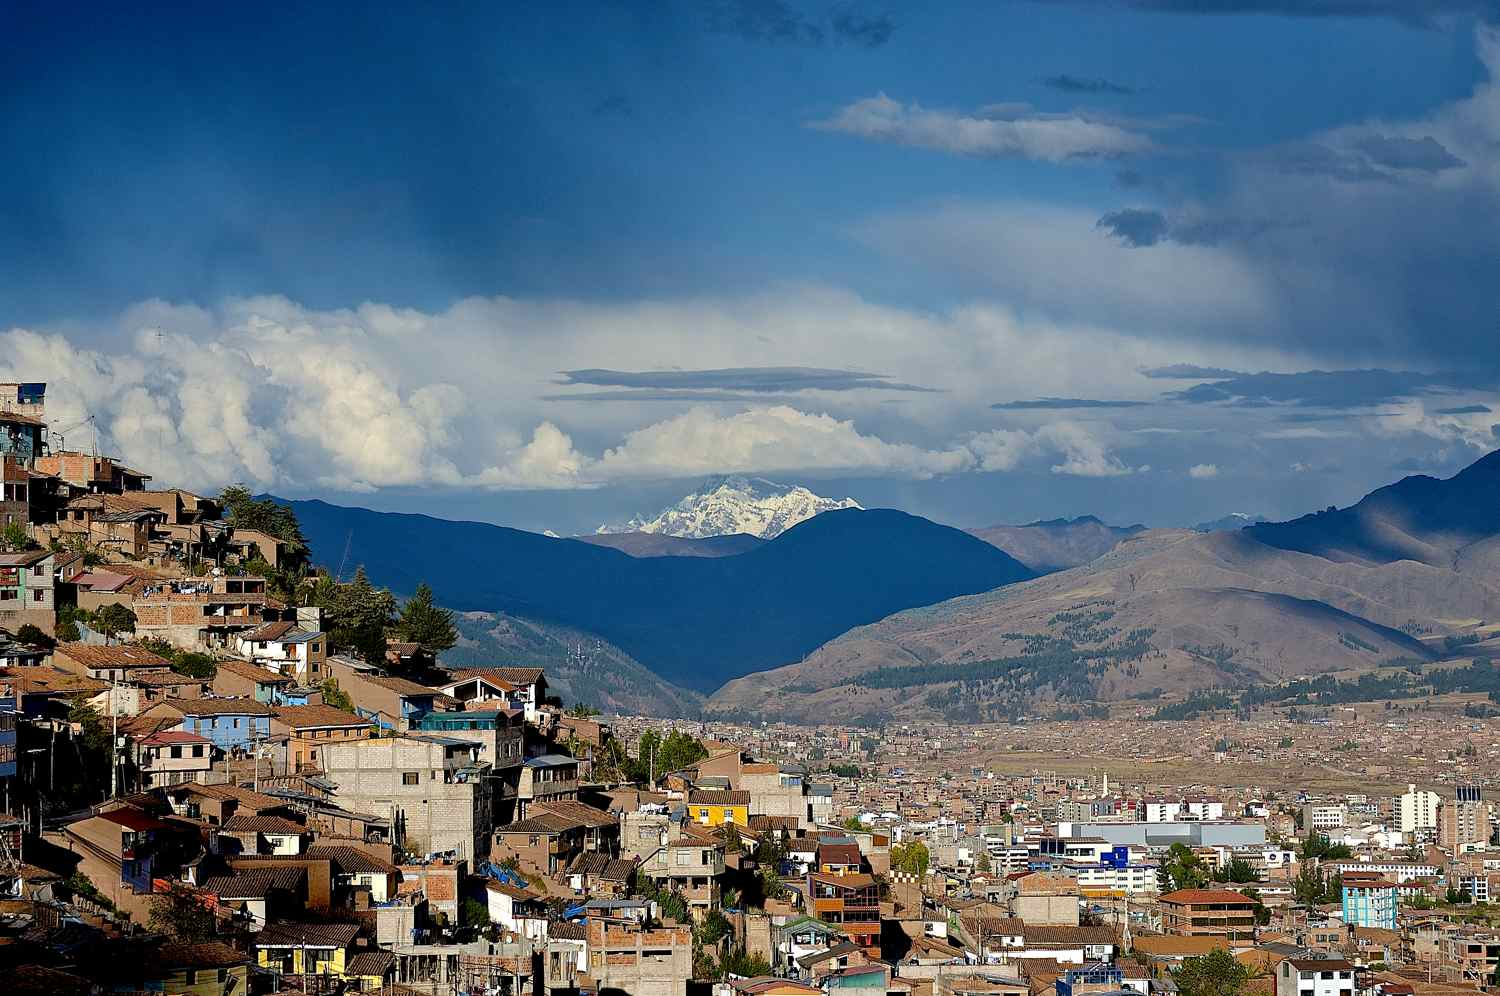 This was our view from the San Blas neighborhood of Cusco, Peru! Hard to fathom we looked upon these buildings, the Andes and this Ausangate mountain for 6 incredible months.